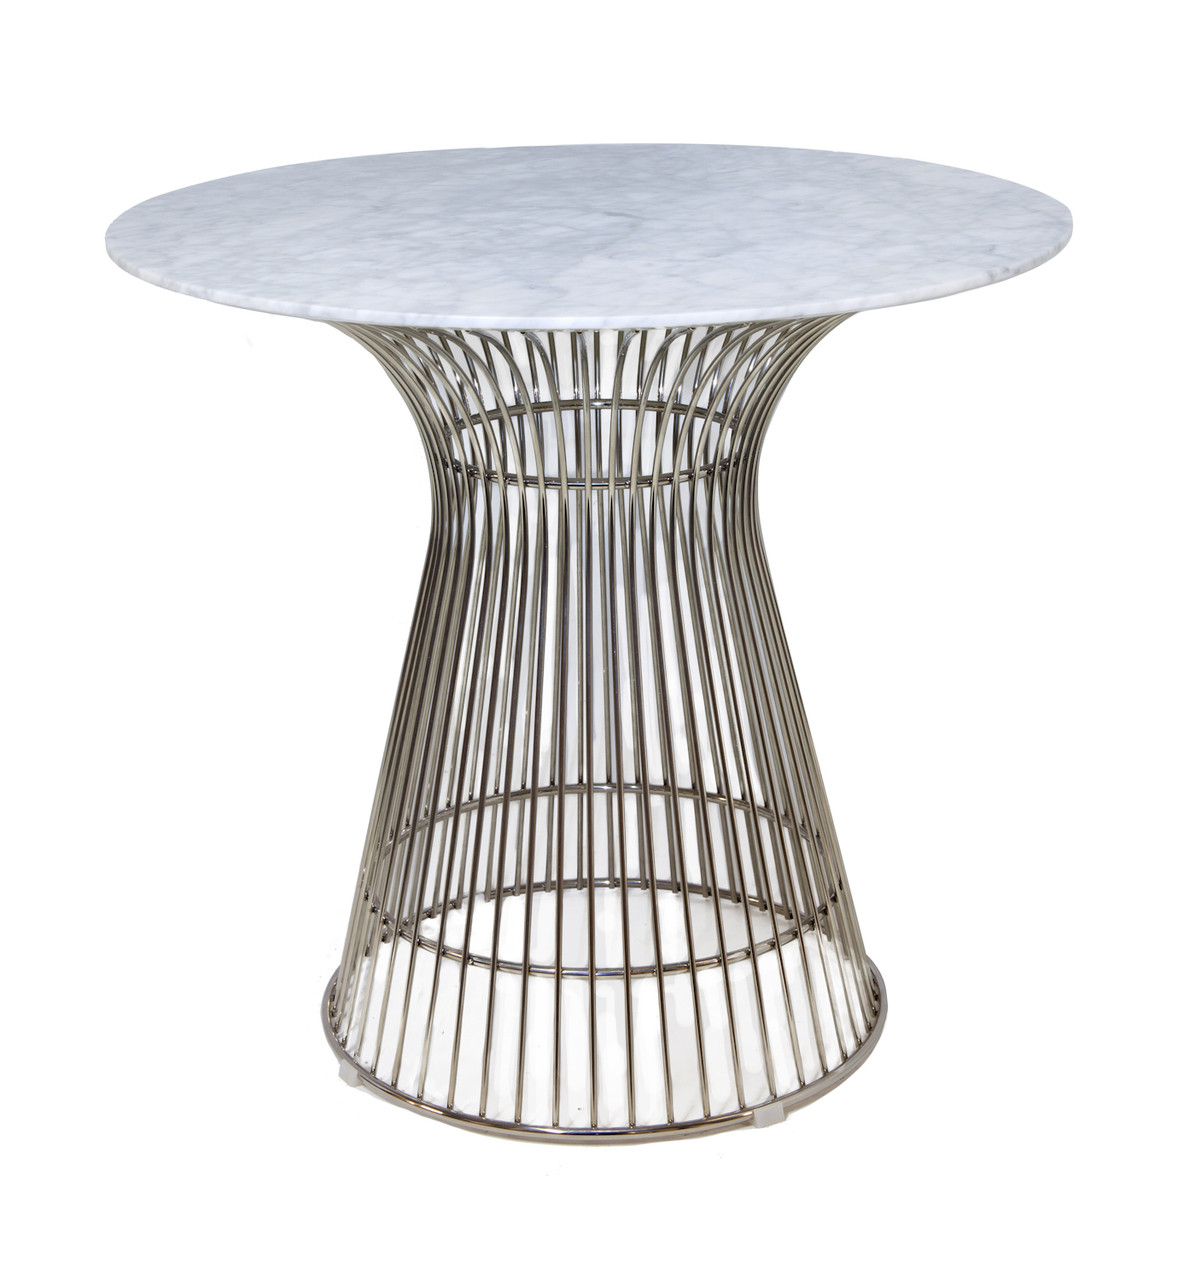 Replica Warren Platner - Wire Dining Table - Stainless Steel - Marble Top - 80cm